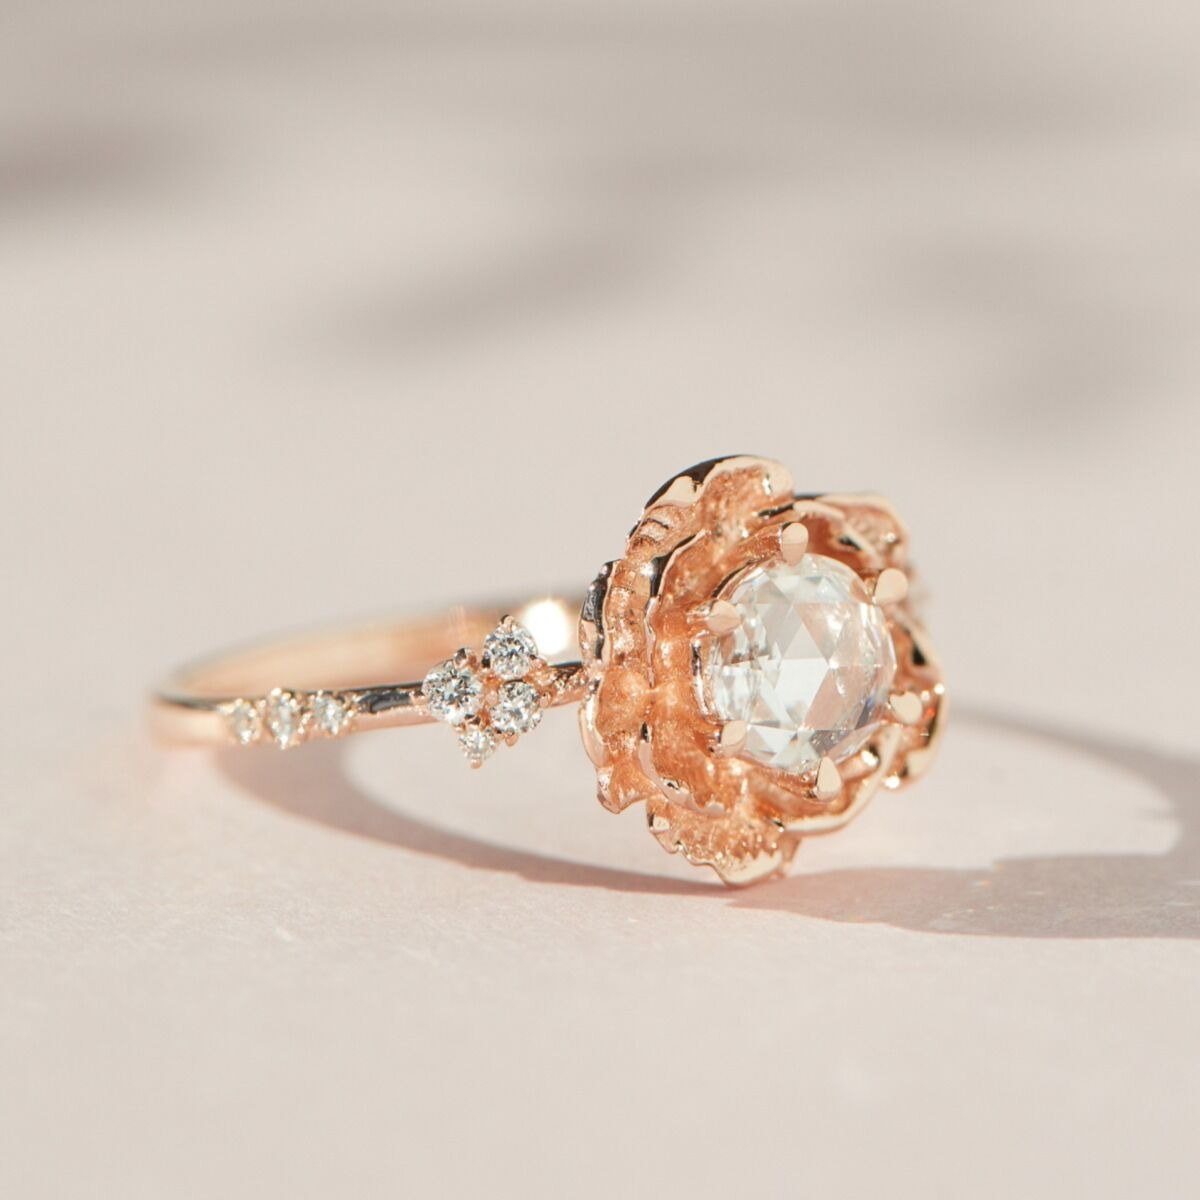 unique rose gold engagement rings with gold floral shape around diamond center stone